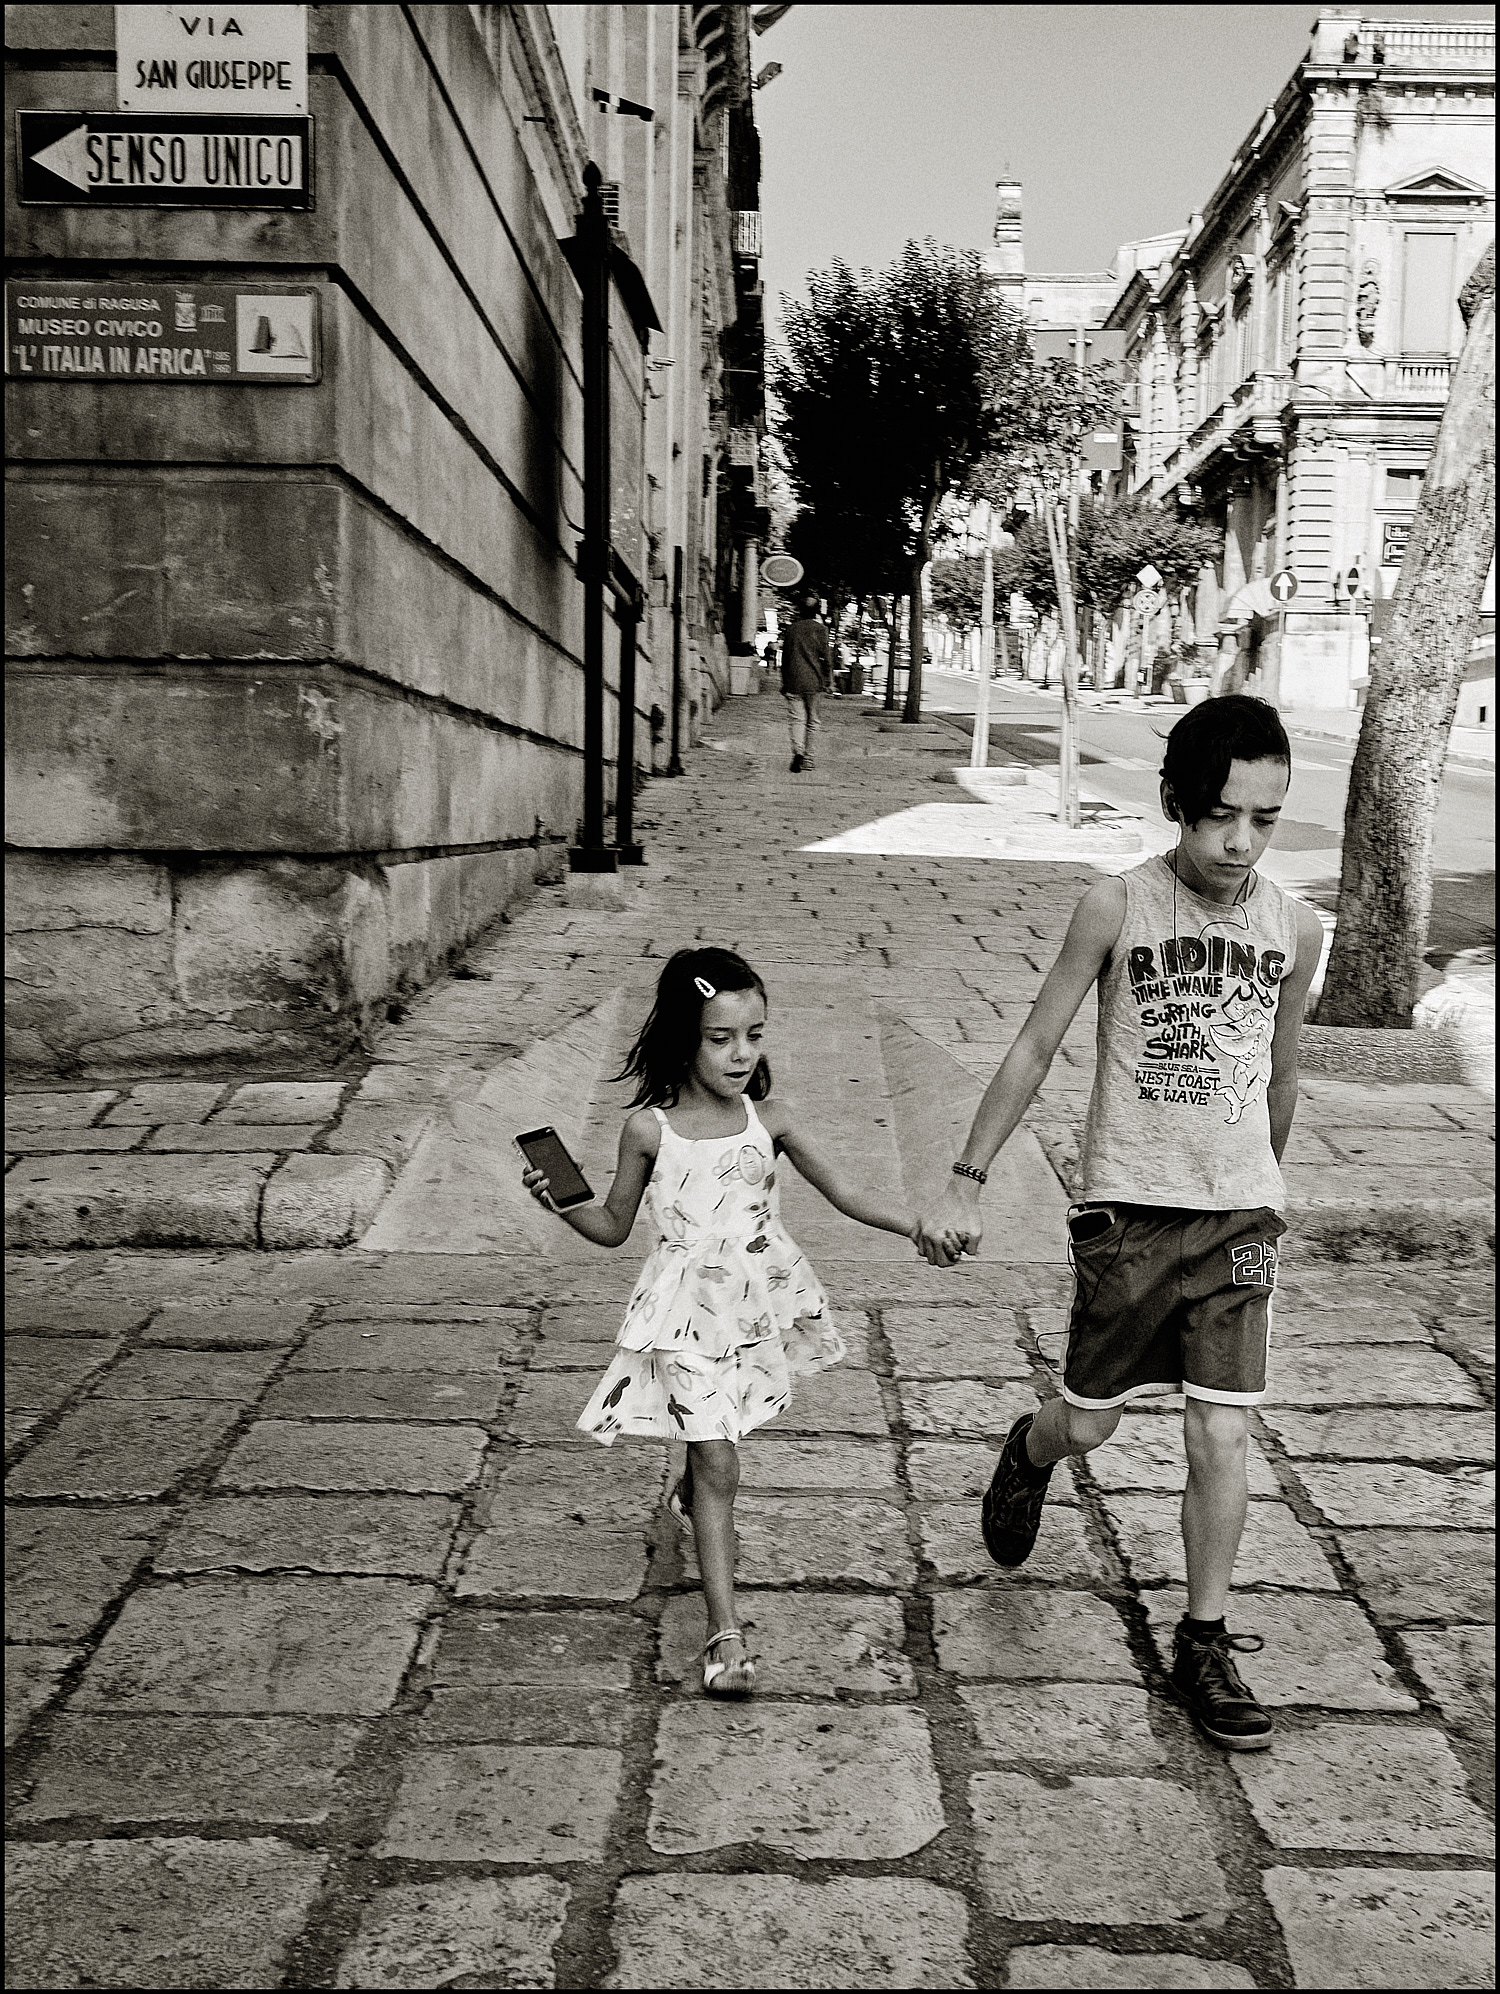 Walking with his sis...